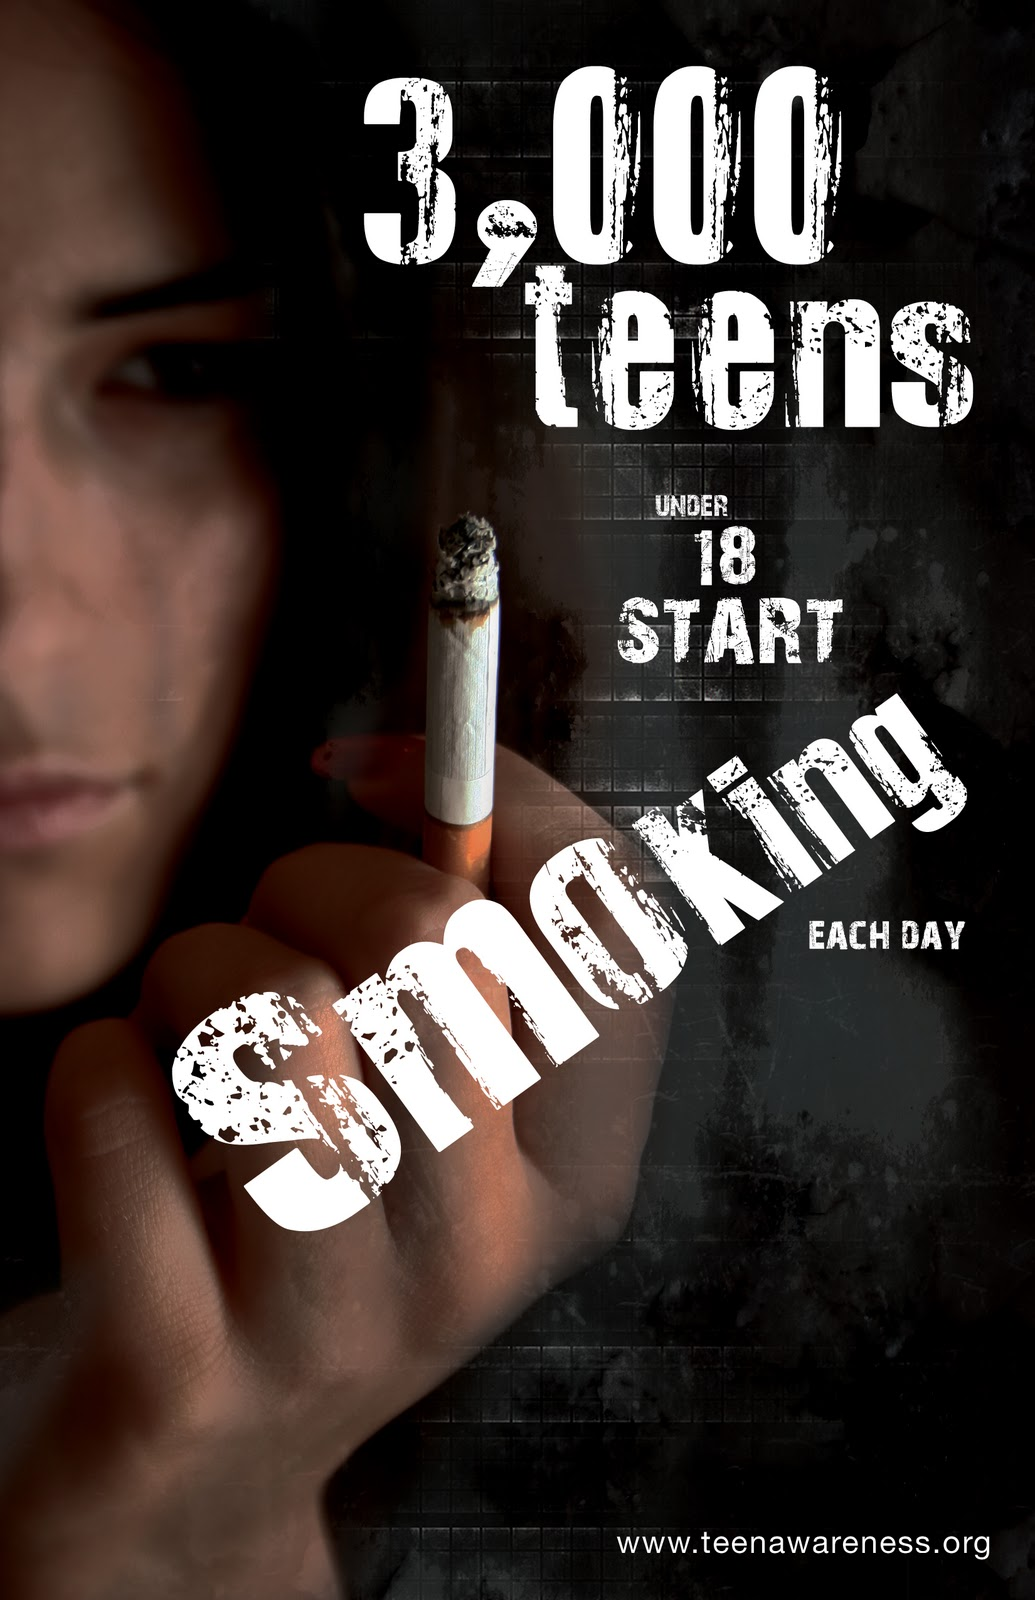 SMOKING%2BUPDATE The Portland Public Health Division's (HHSD) Substance Abuse Prevention ...